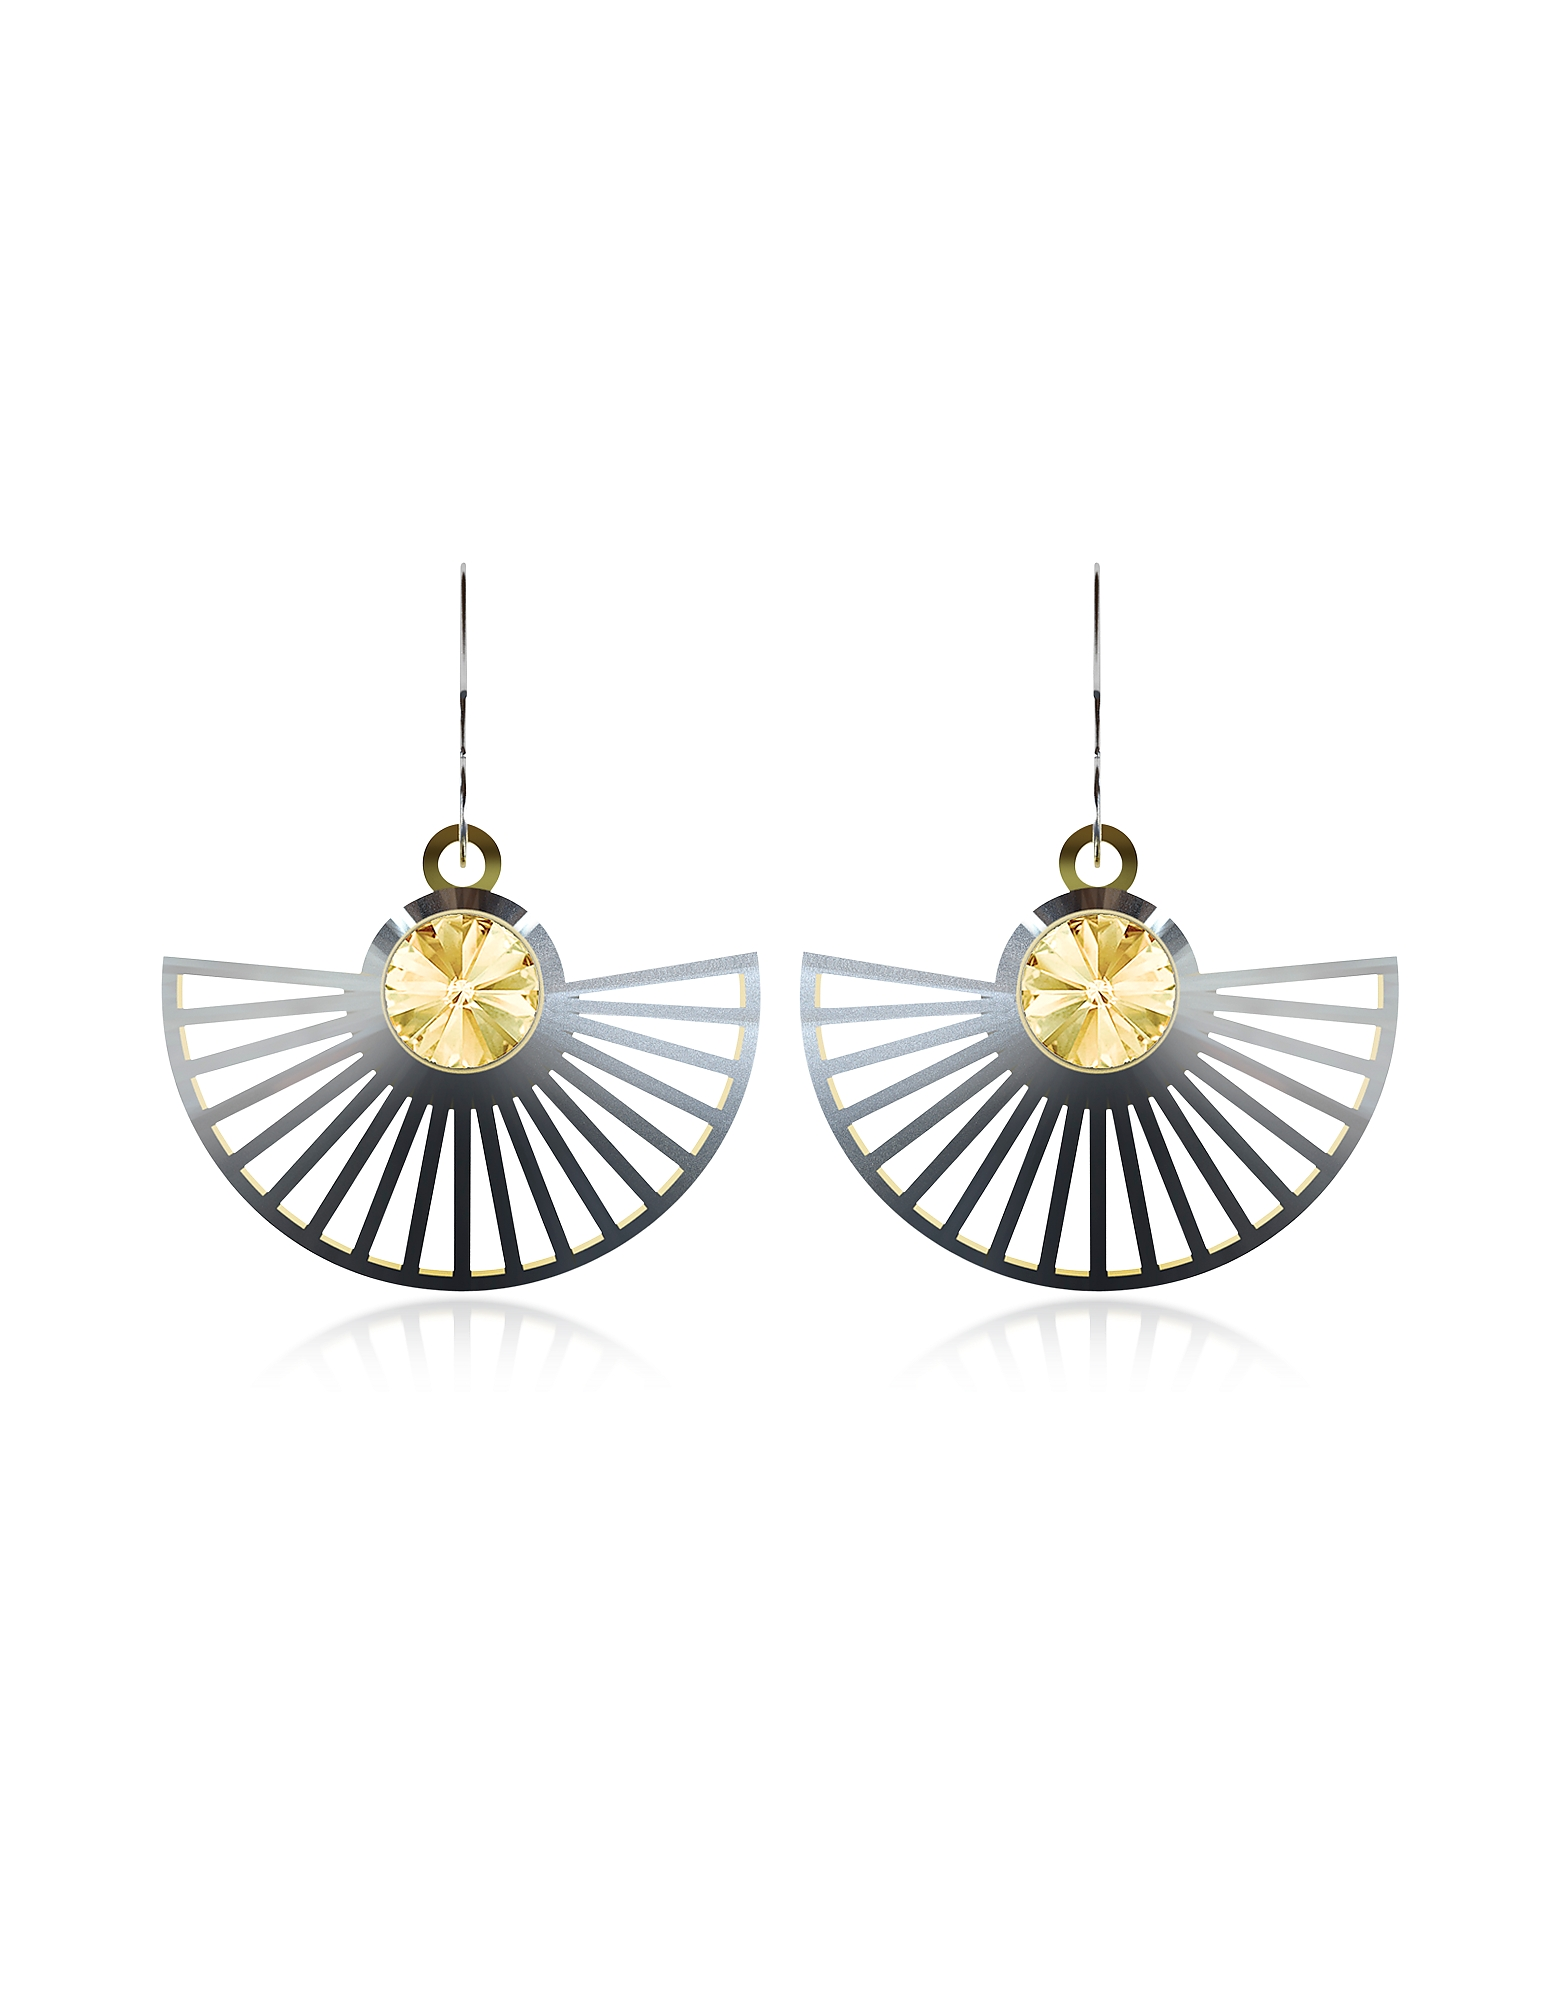 Vojd Studios Earrings, Phase Precious Sterling Silver Fan Dangle Earrings